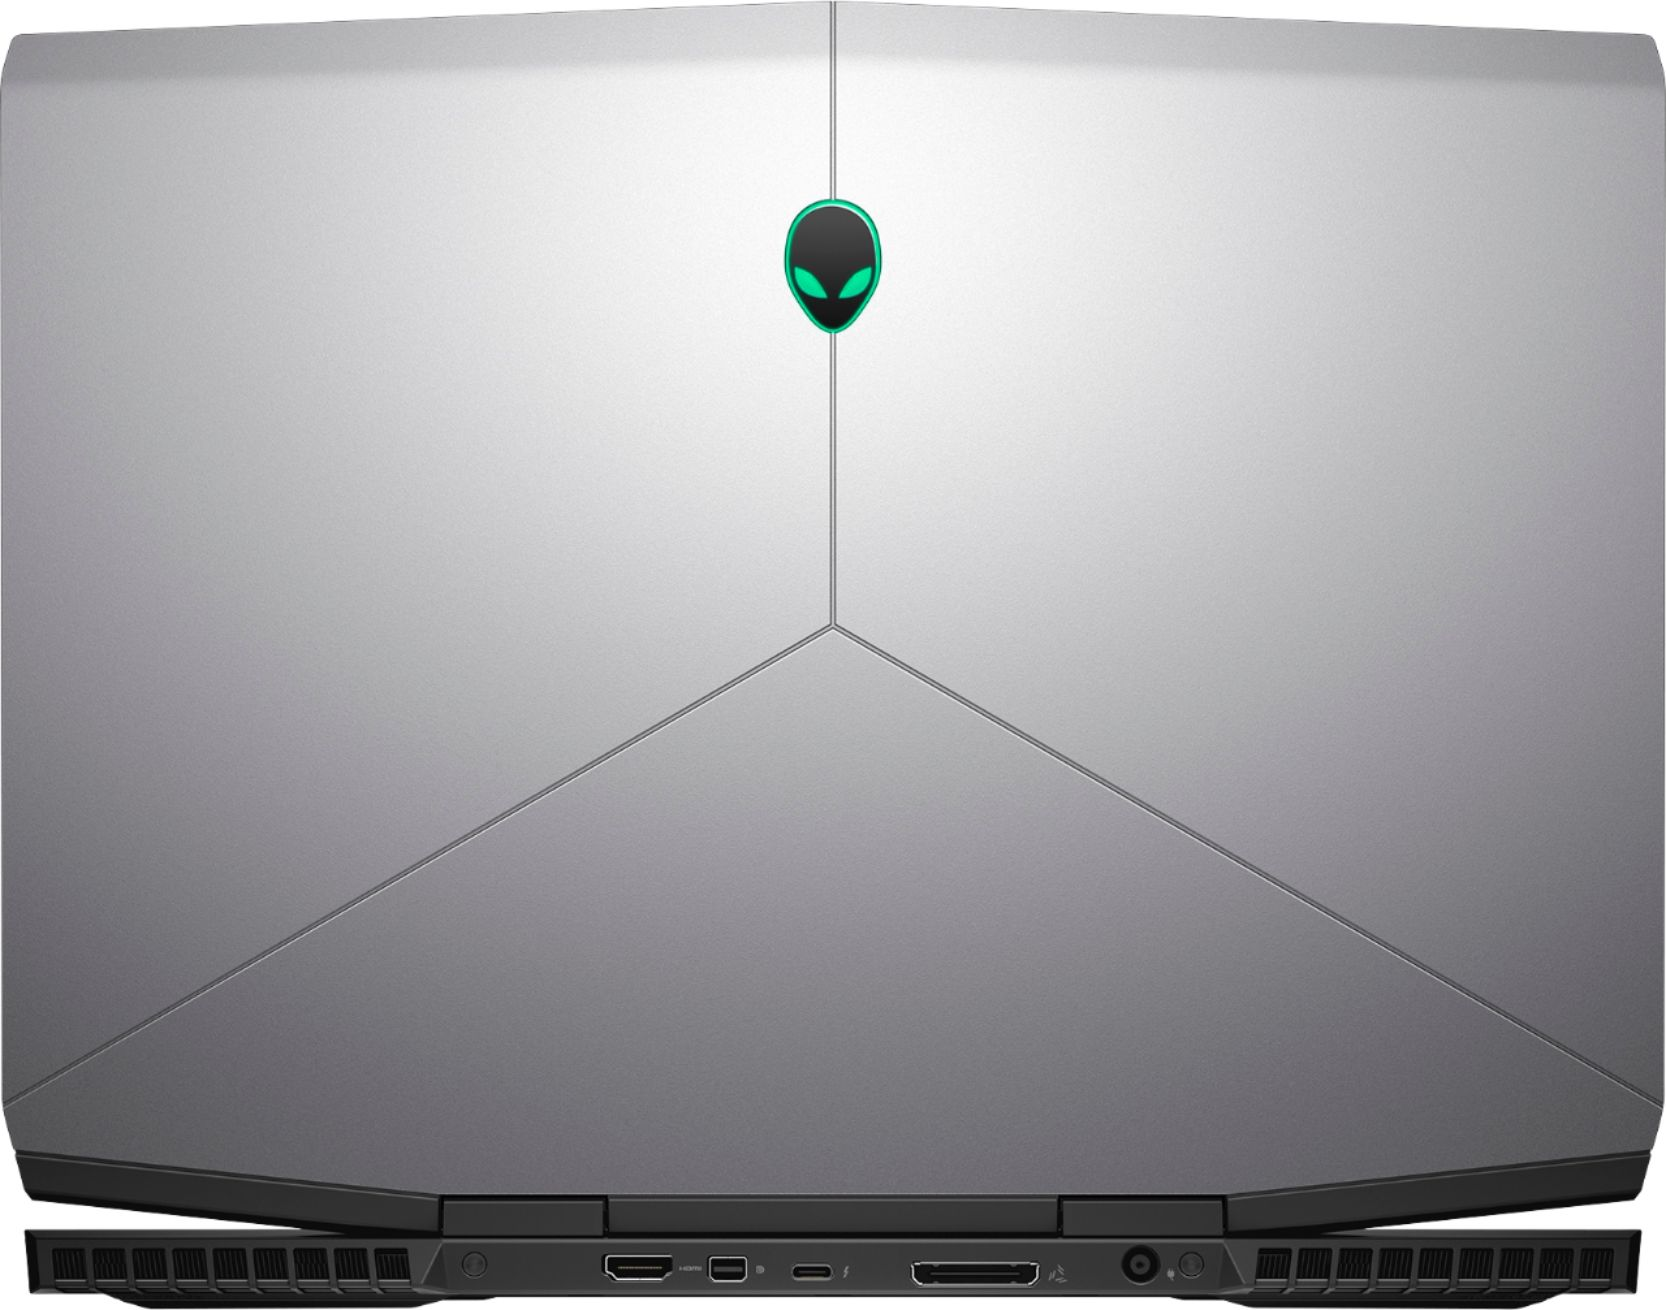 "Alt View Zoom 3. Alienware - Geek Squad Certified Refurbished 15.6"" Laptop - Intel Core i7 - 16GB Memory - NVIDIA GeForce GTX 1060 - 1TB HD+128GB SSD - Silver."